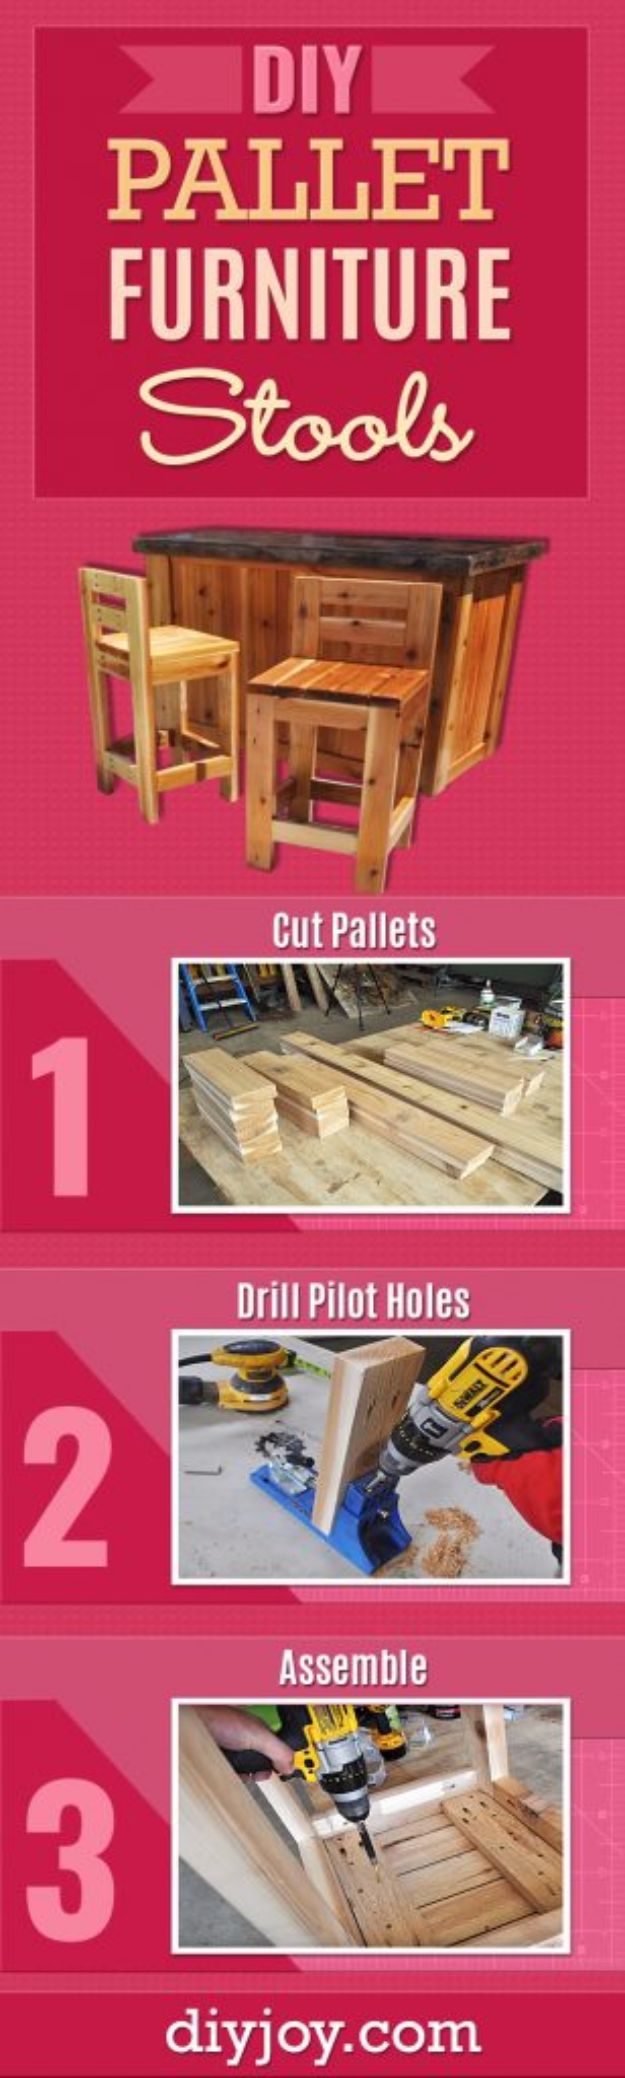 diy barstools - DIY Wooden Stools - Easy and Cheap Ideas for Seating and Creative Home Decor - Do It Yourself Bar Stools for Modern, Rustic, Farmhouse, Shabby Chic, Industrial and Simple Classic Decor #barstools #diy